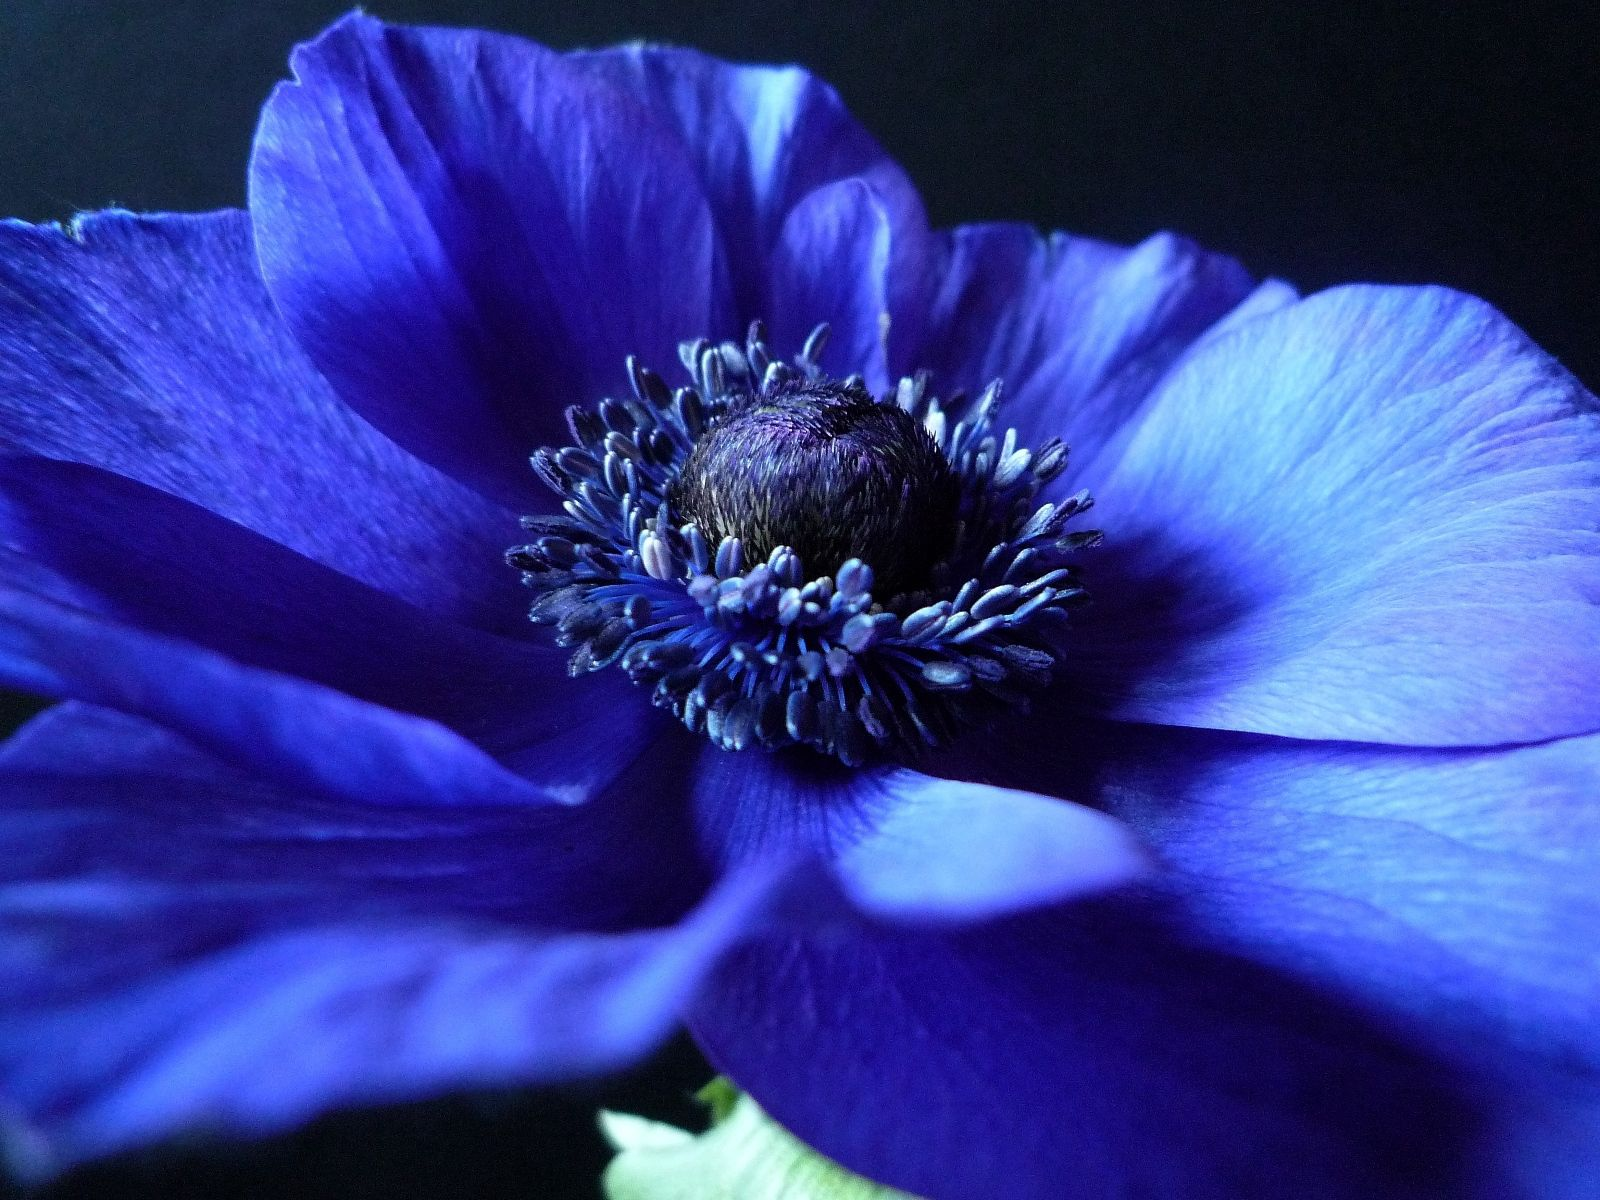 53077 Screensavers and Wallpapers Petals for phone. Download Background, Flower, Macro, Dark, Petals pictures for free